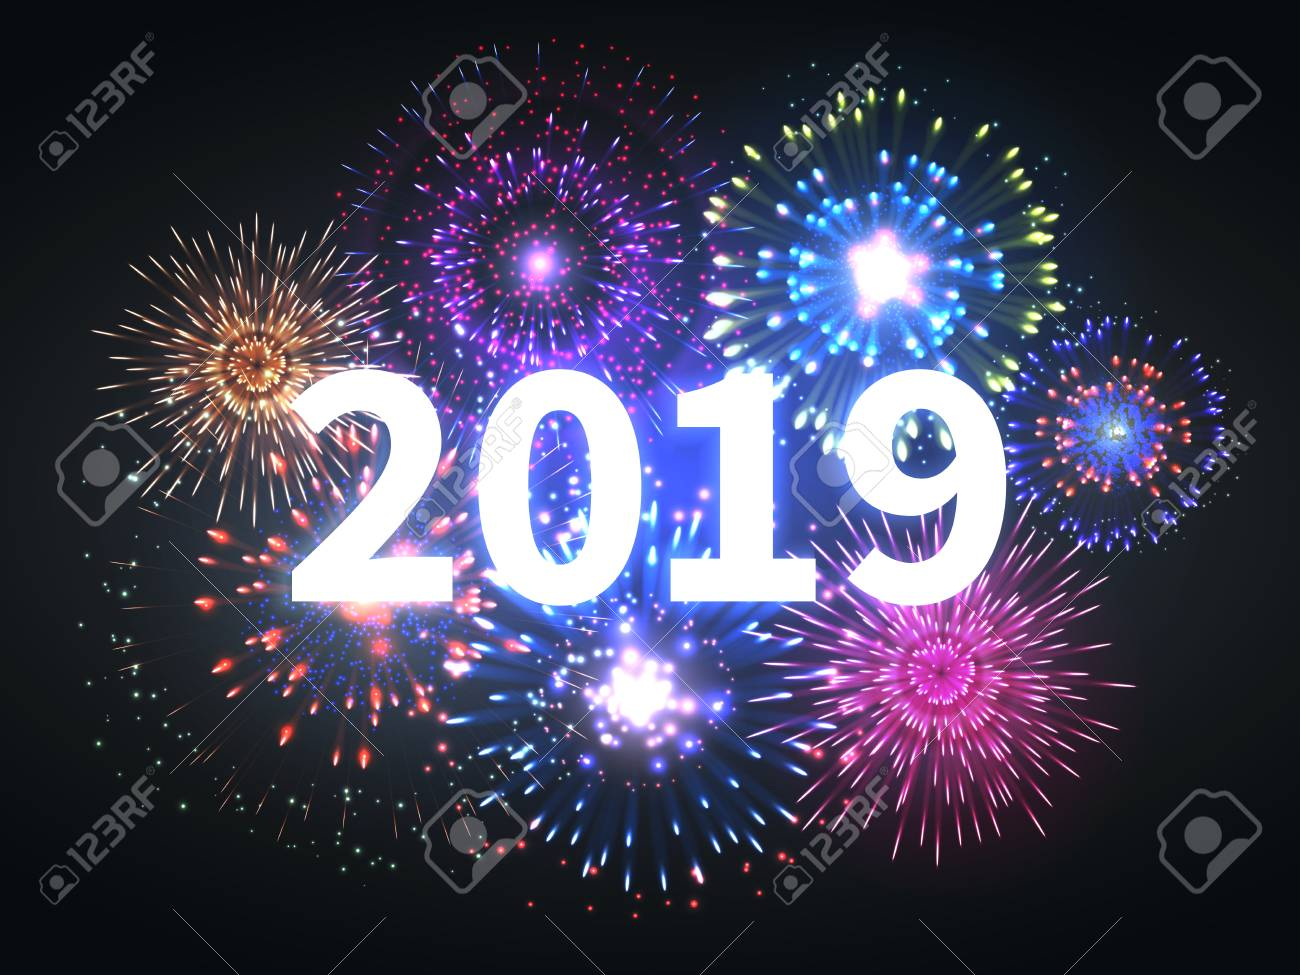 fireworks explosion happy new year 2019 event banner pyrotechnics sparks festive firework celebration